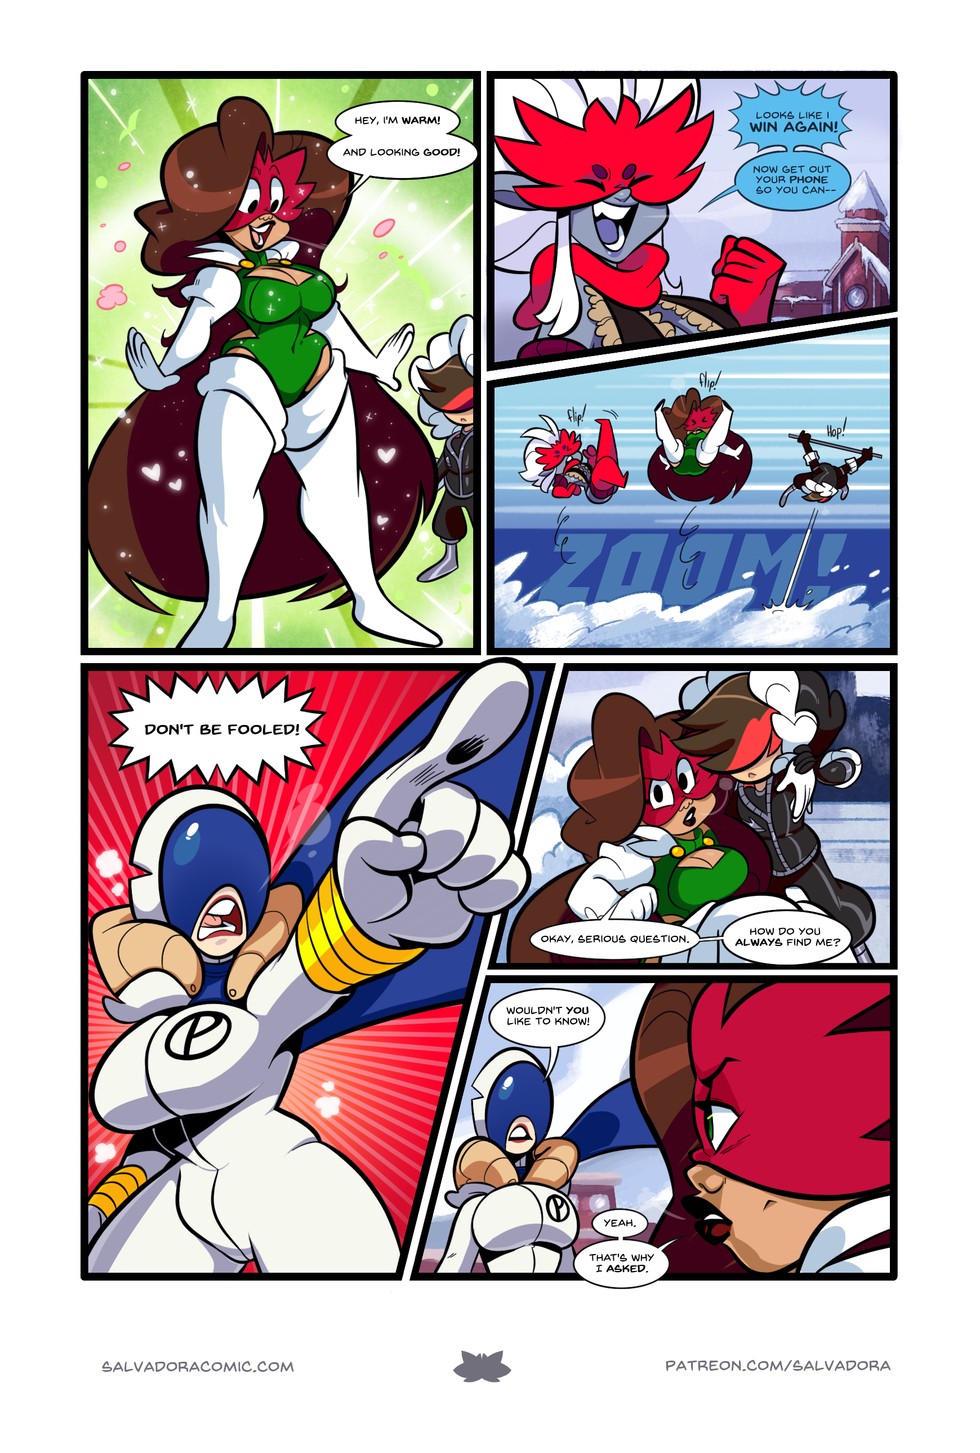 Without that ventilation hole in the upper chest, Salvadora's winter costume would be too hot, you see. It's practical!